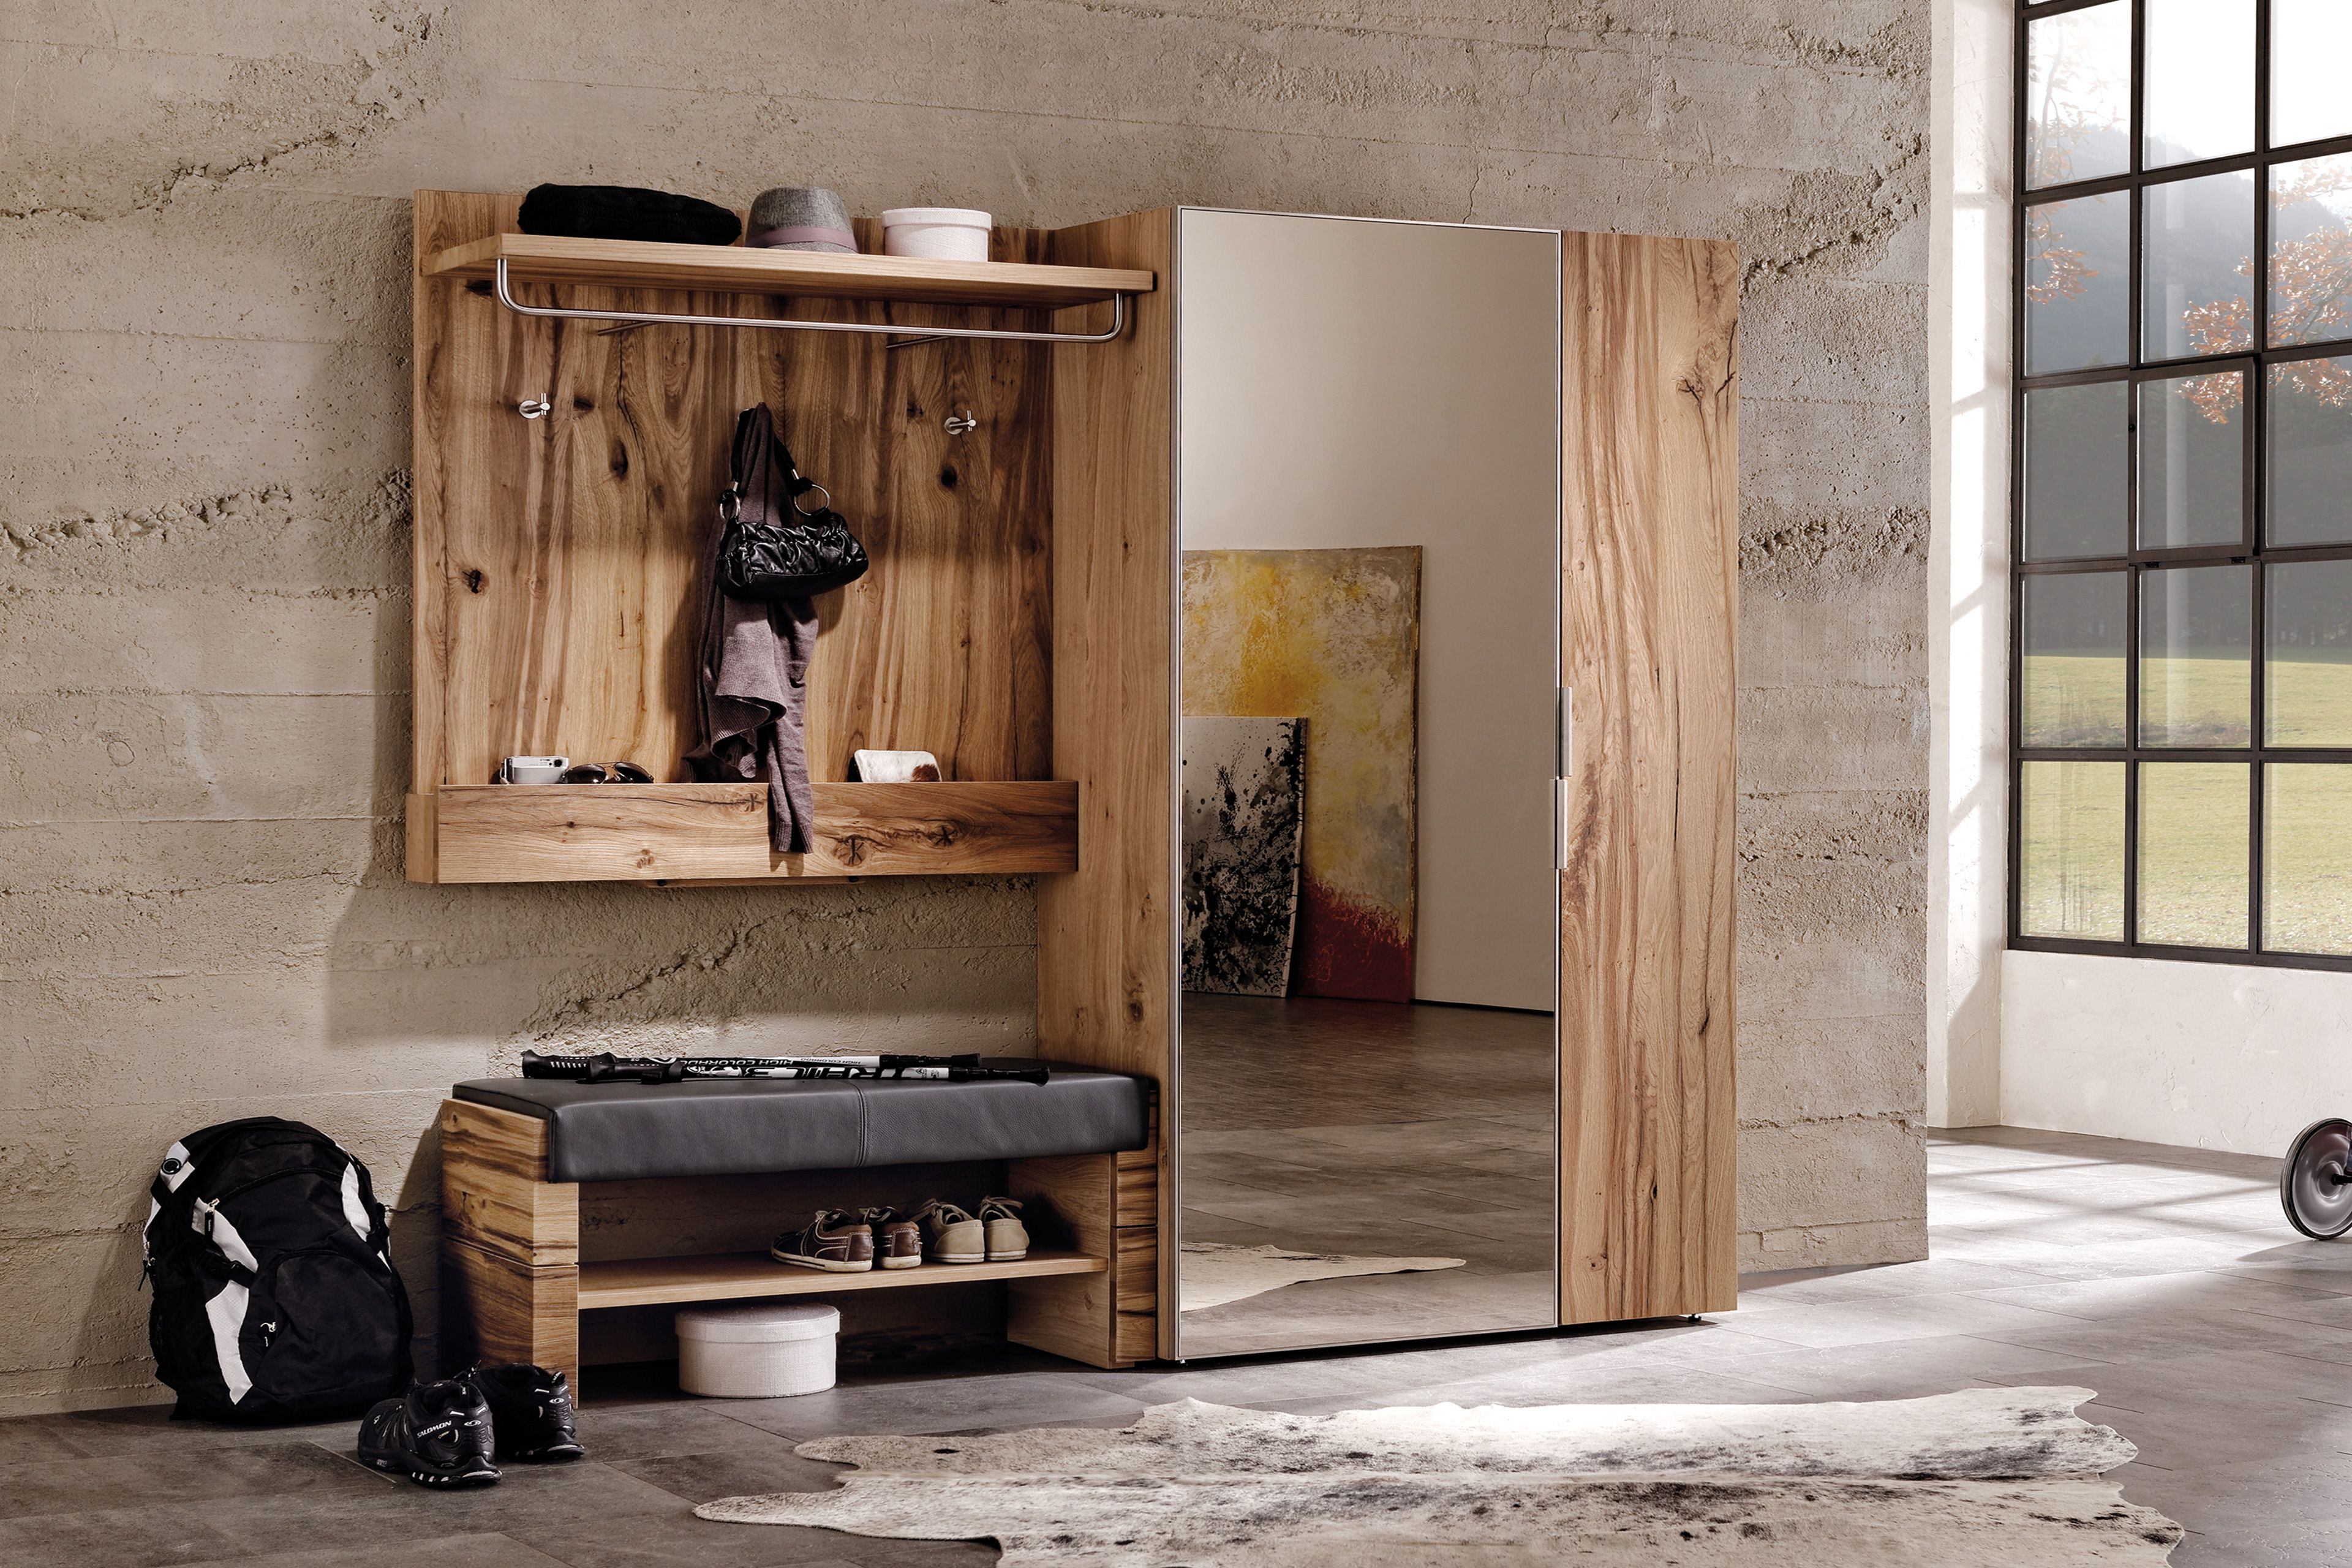 v alpin von voglauer garderobe altholz eiche leder k che pinterest altholz eiche und. Black Bedroom Furniture Sets. Home Design Ideas